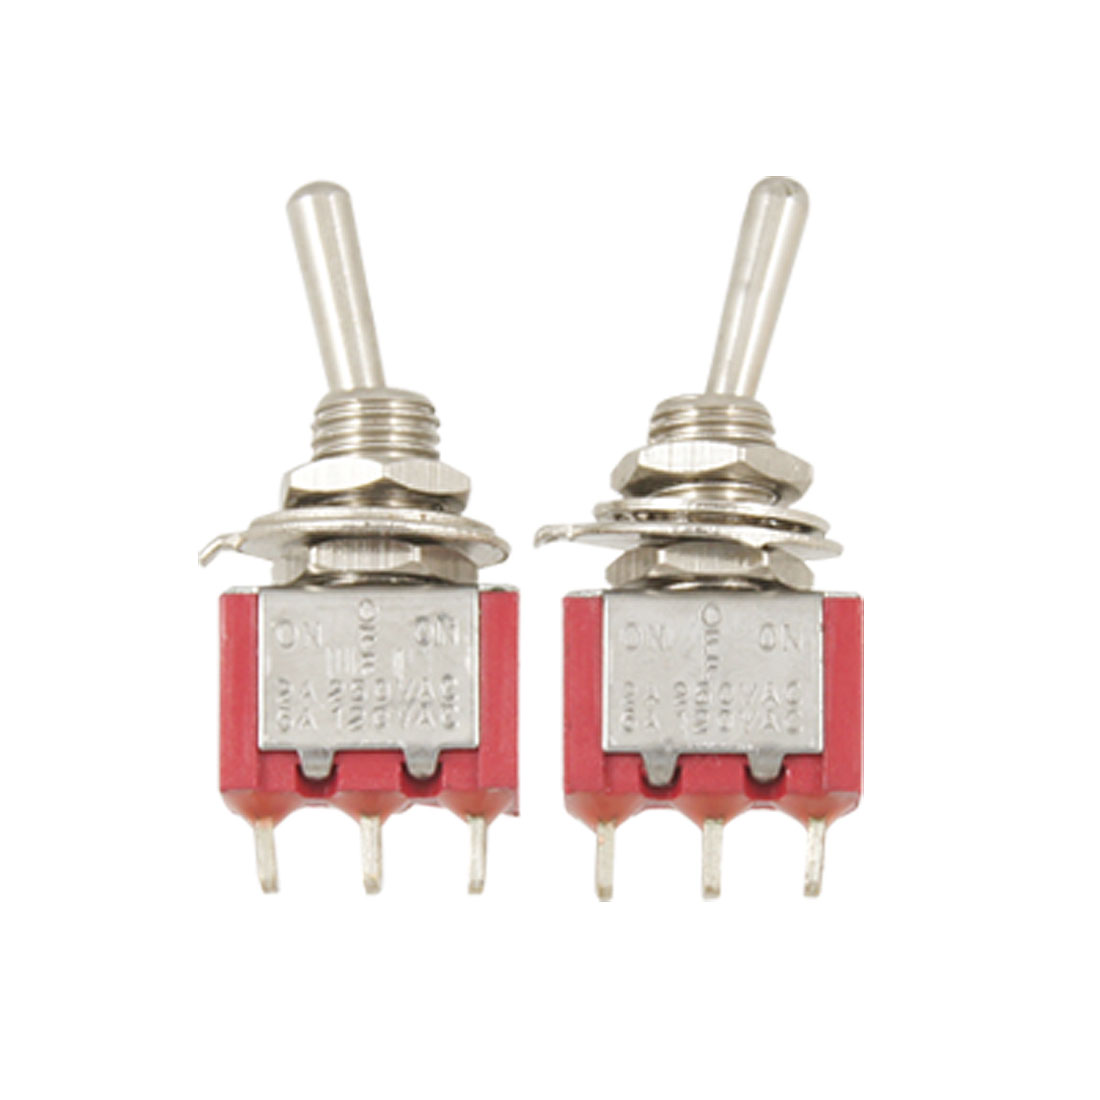 2 Pcs AC 120V/5A 250V/2A ON OFF ON SPDT Toggle Switches